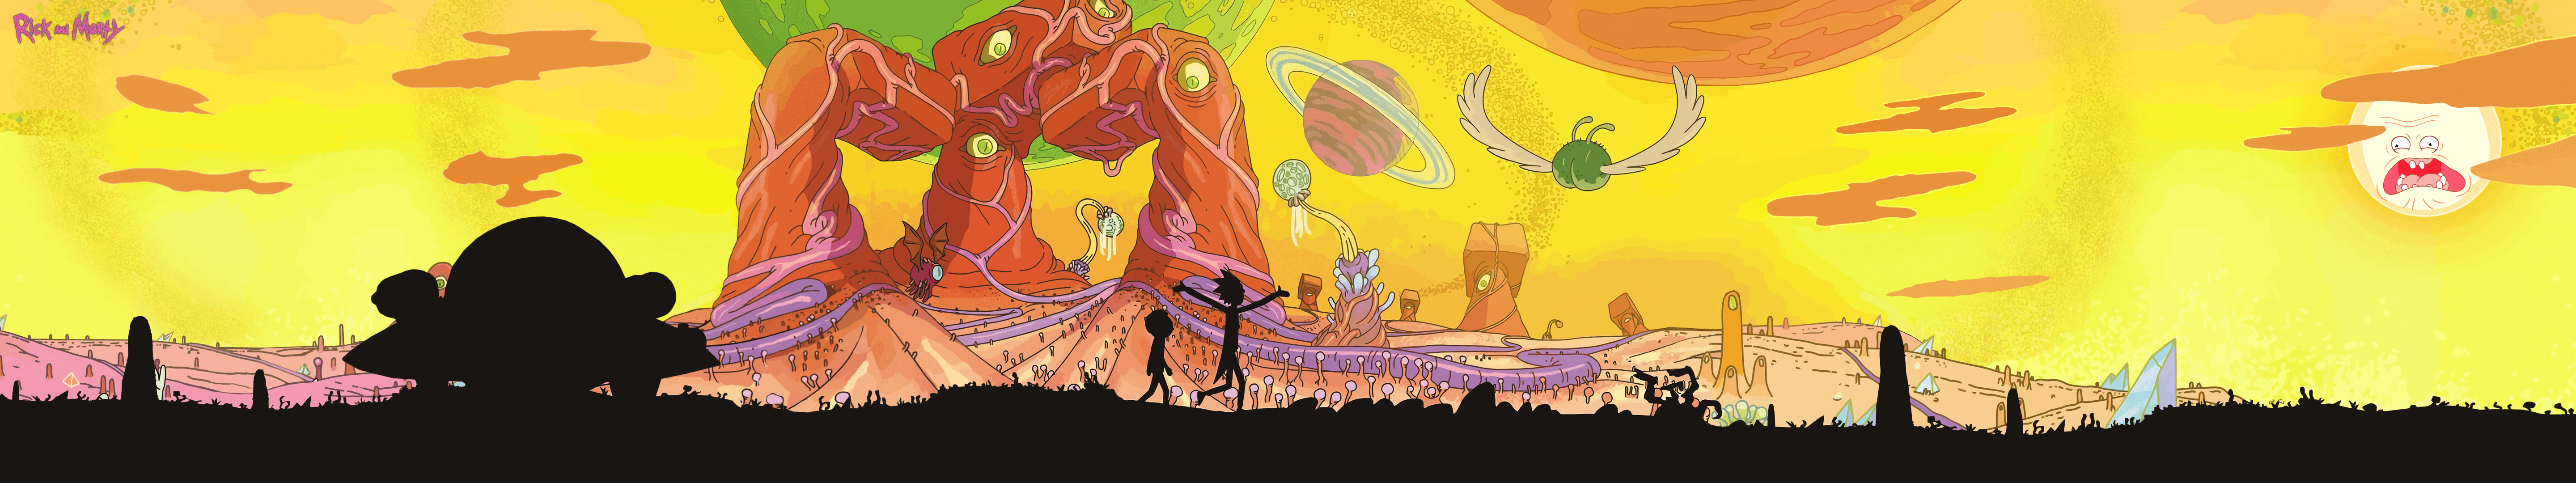 Rick And Morty Wallpapers 5760x1080